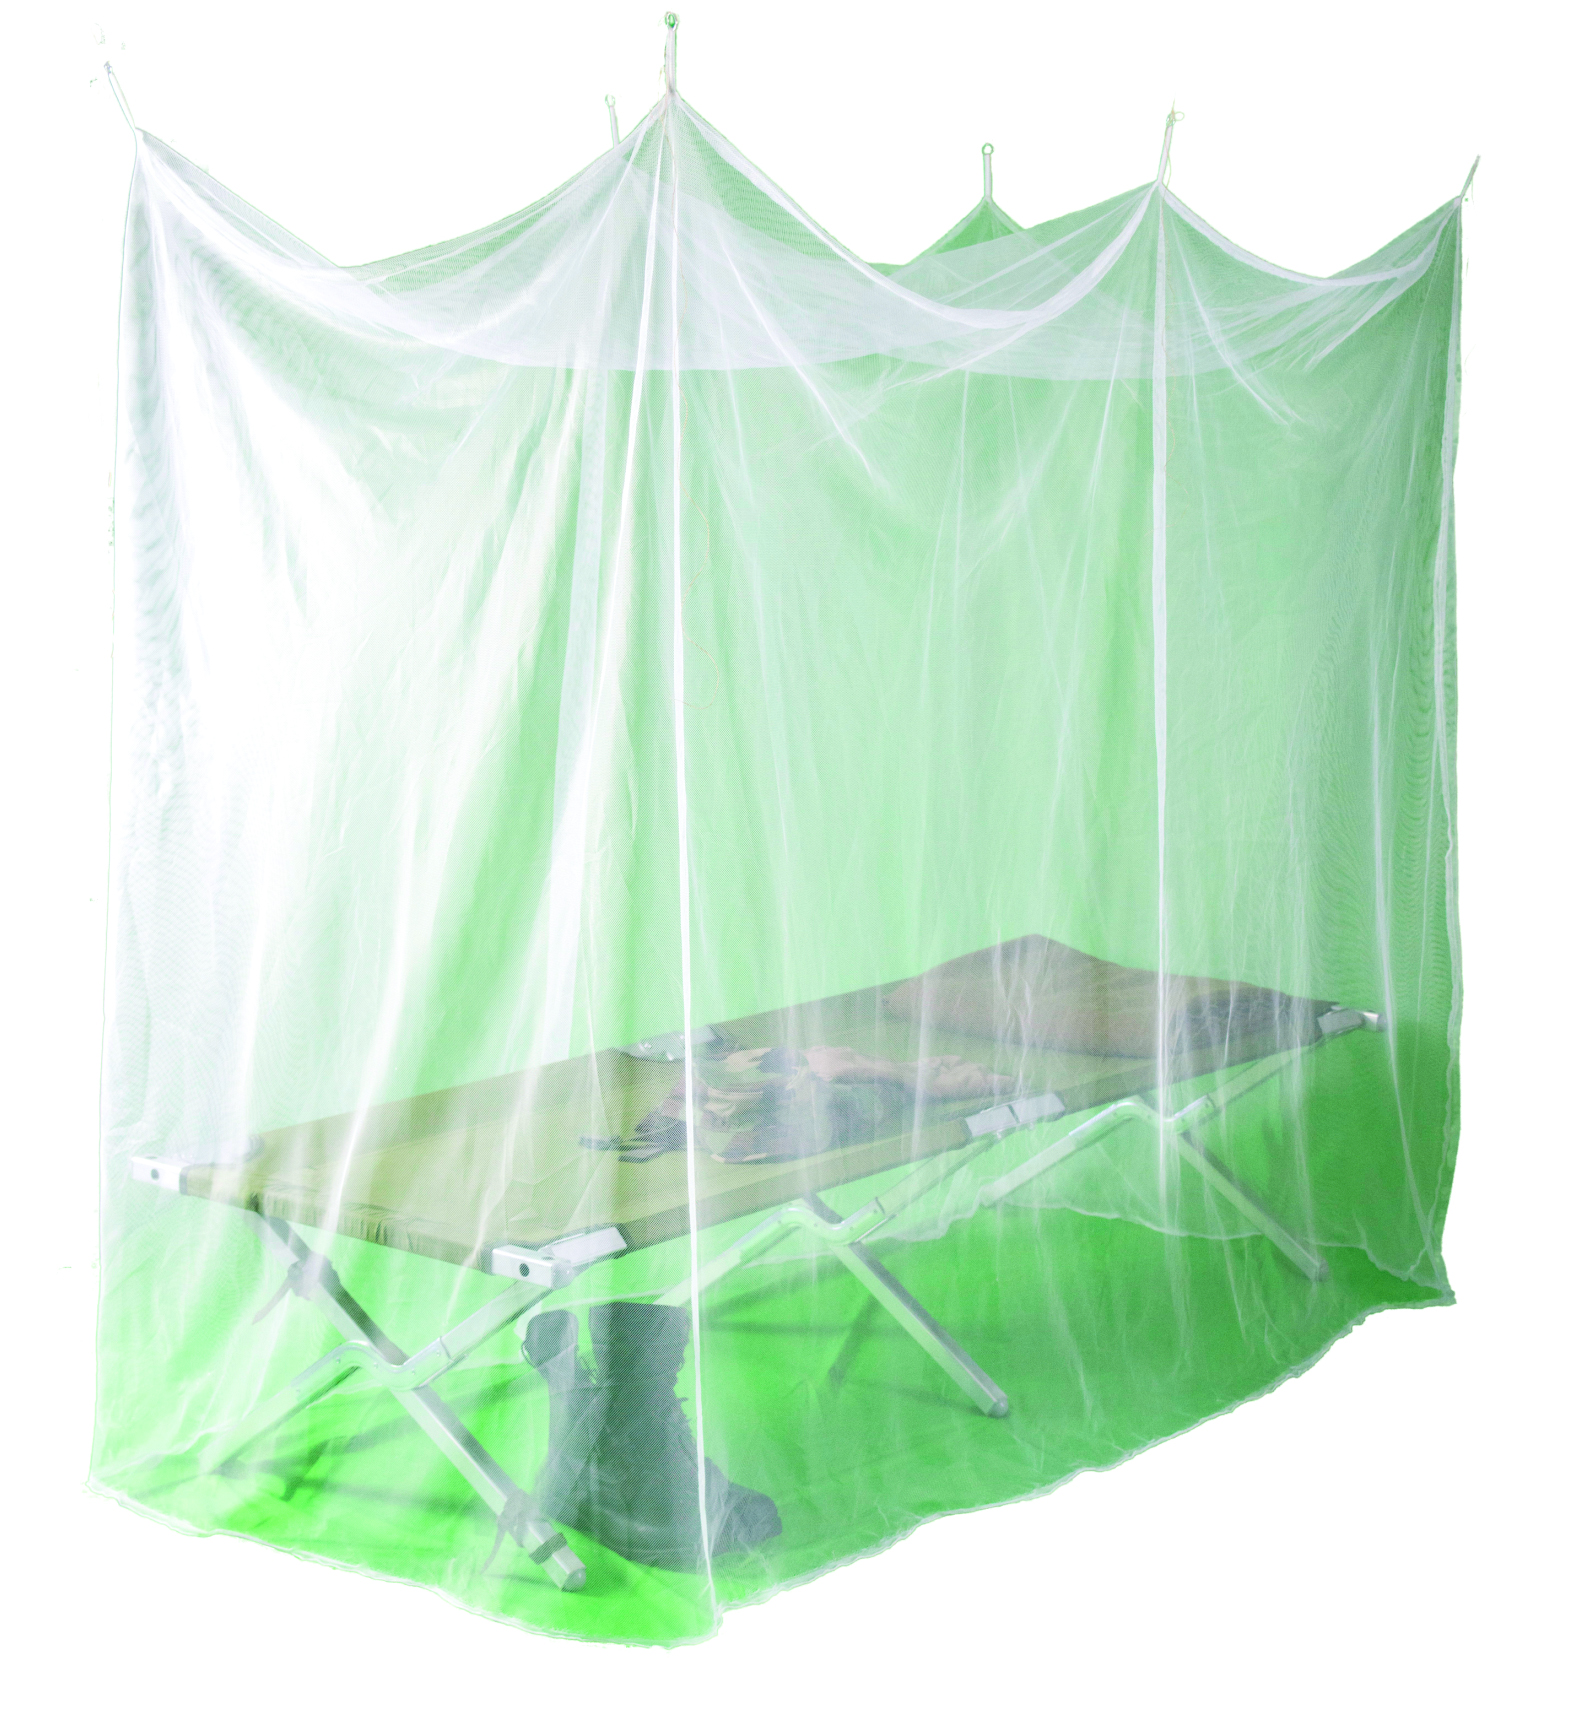 The Cotmaster Mosquito Nets Scs Ltd Our Products